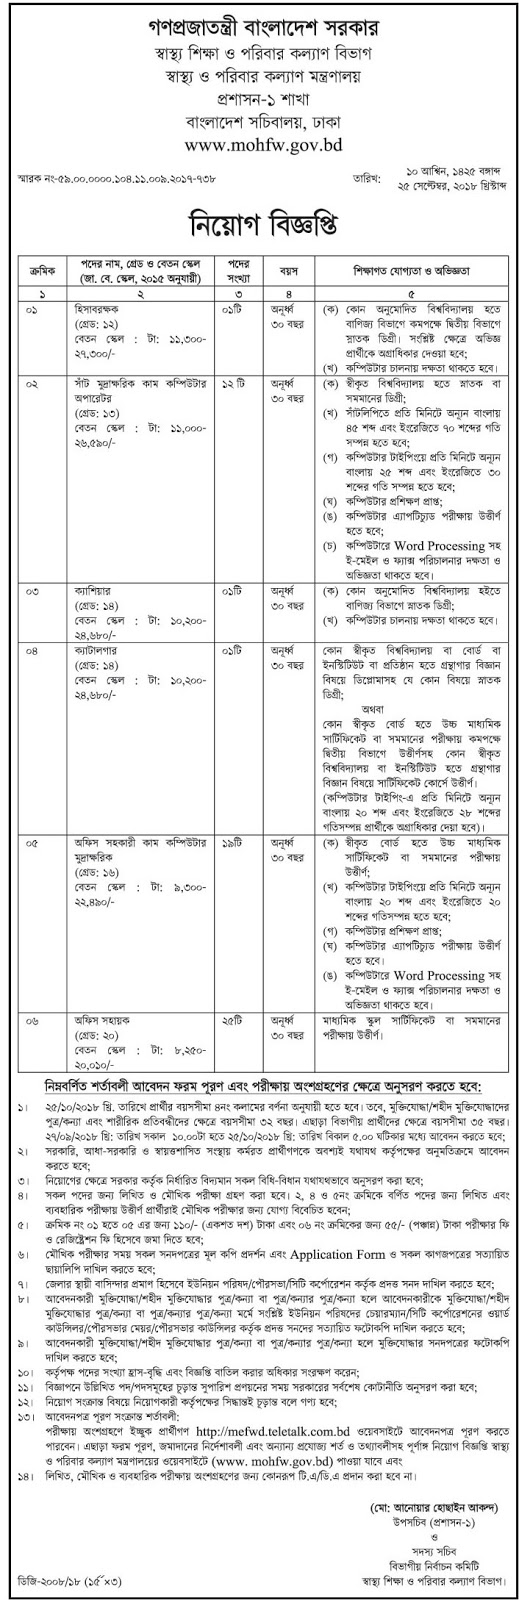 Ministry of Health and Family Welfare (MOHFW) Job Circular 2018